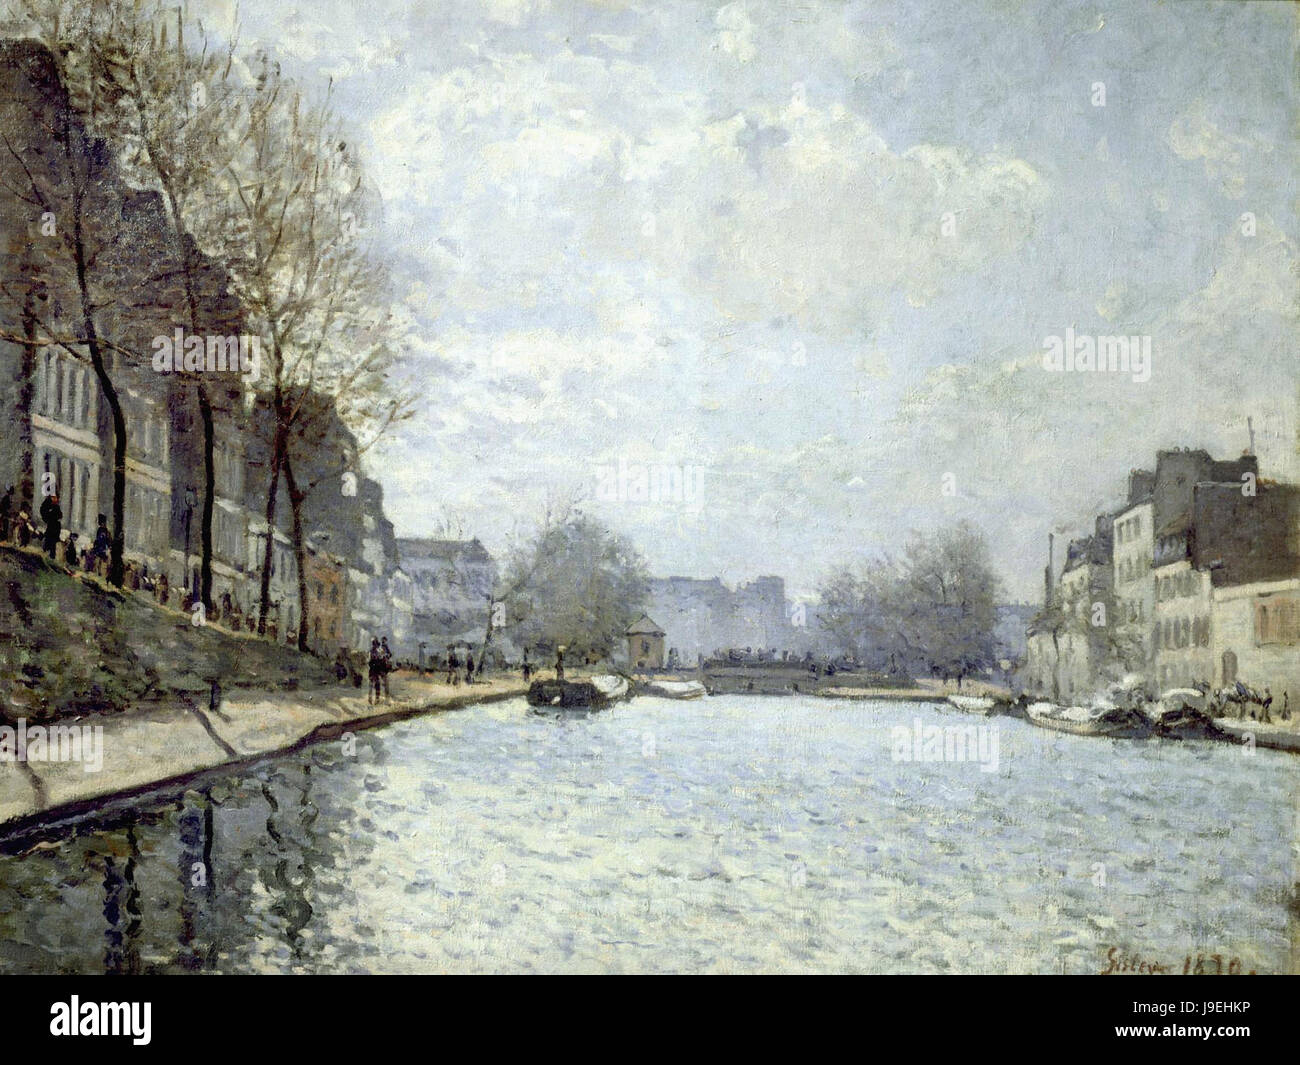 Alfred Sisley   View of the Saint Martin canal 1870  Musée d'Orsay Paris - Stock Image